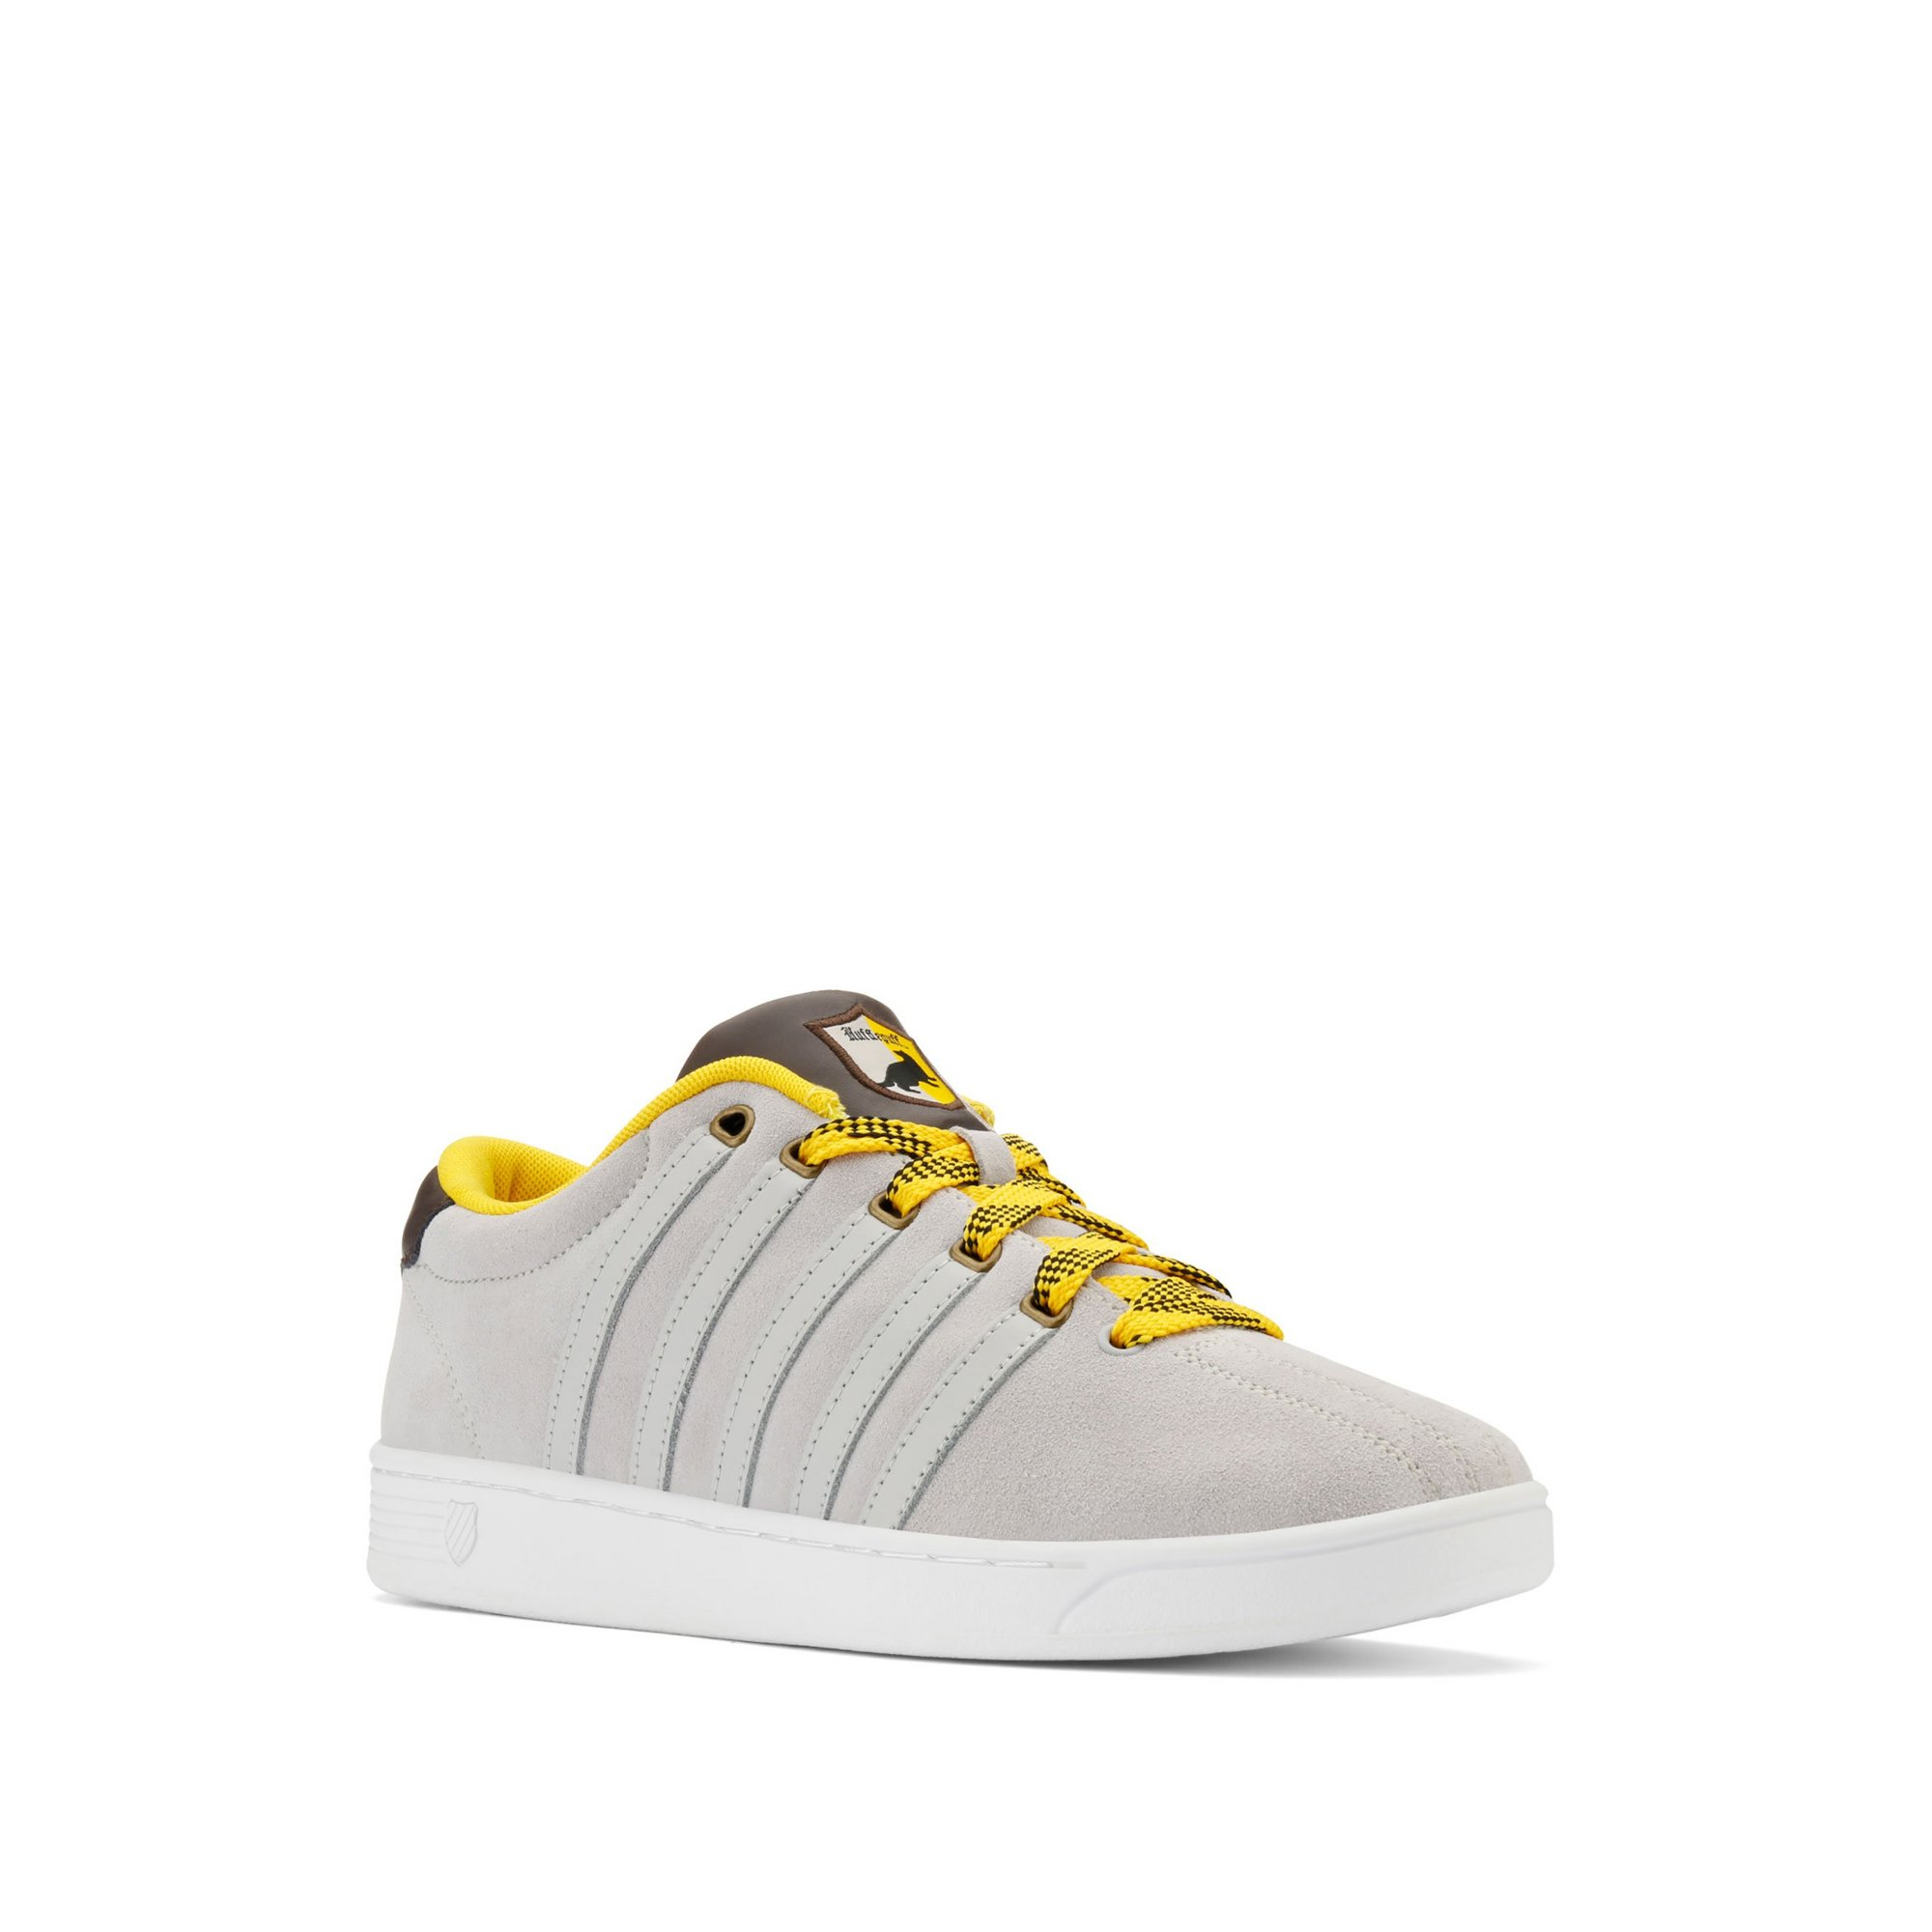 Image of K-Swiss x Harry Potter Court Pro Huffle Puff Trainers